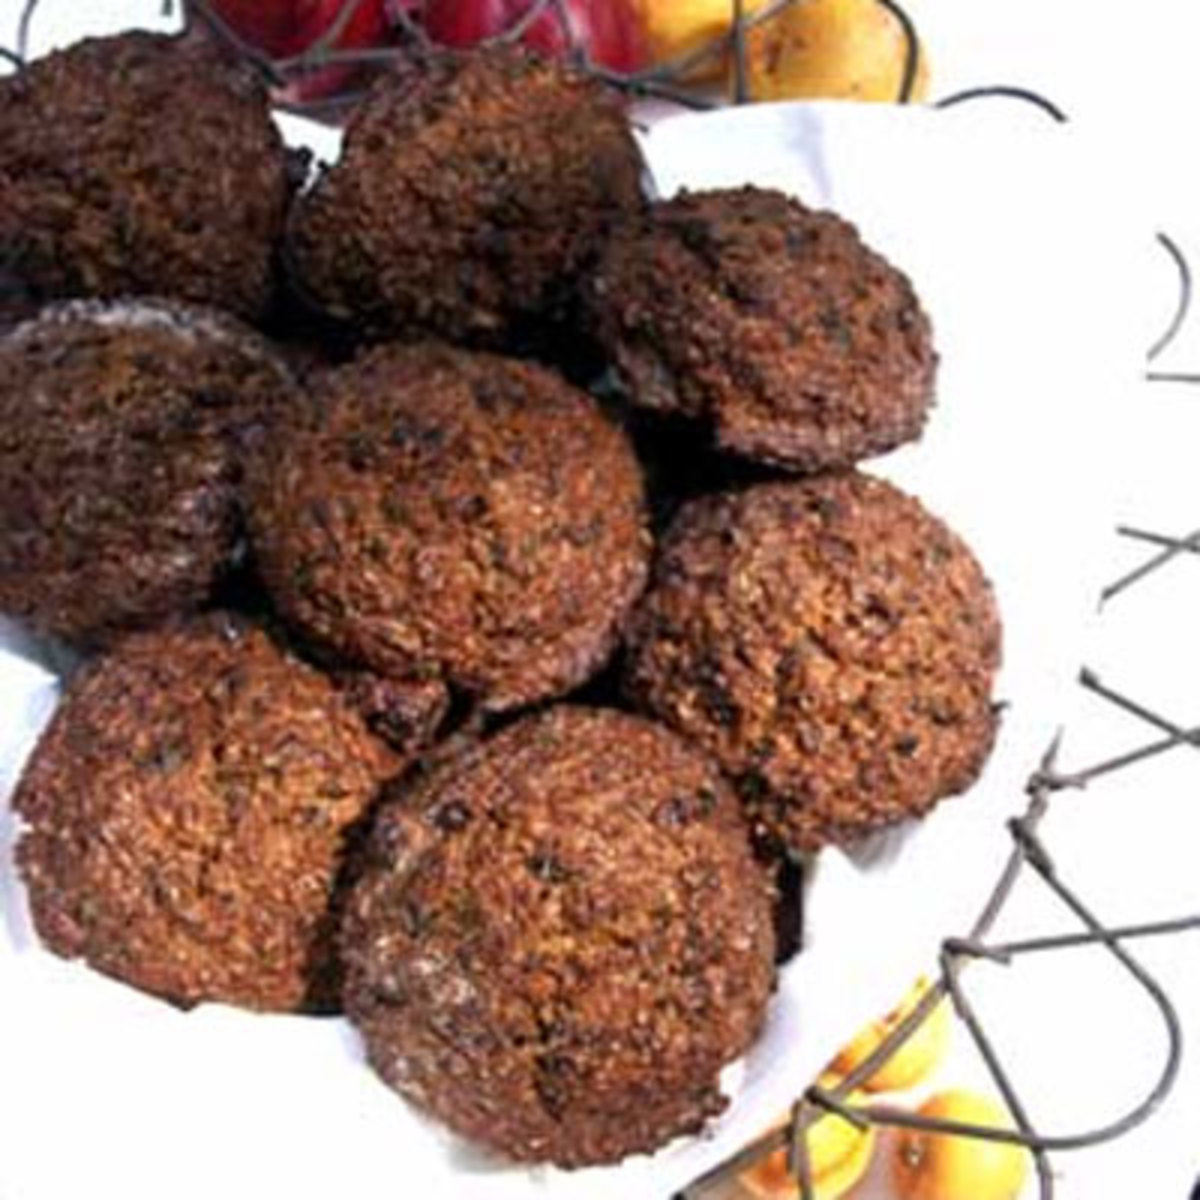 Bran Muffins with California Raisins